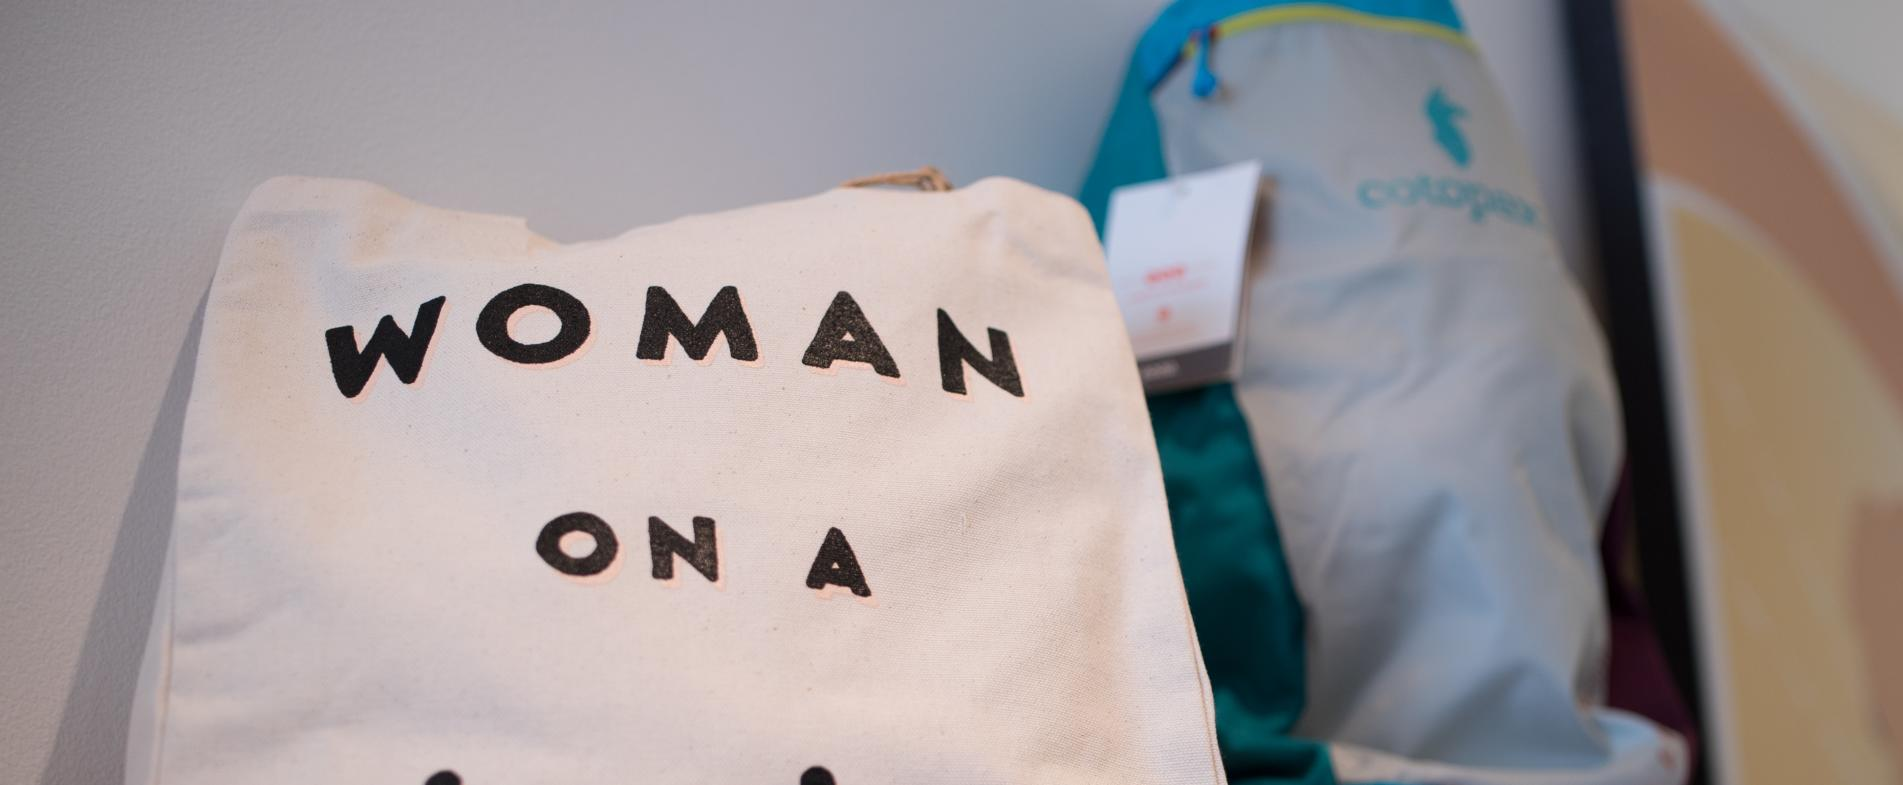 The owner of Reservoir's blog, House on Hudson, will help to stay up to date on the sustainable clothing industry.